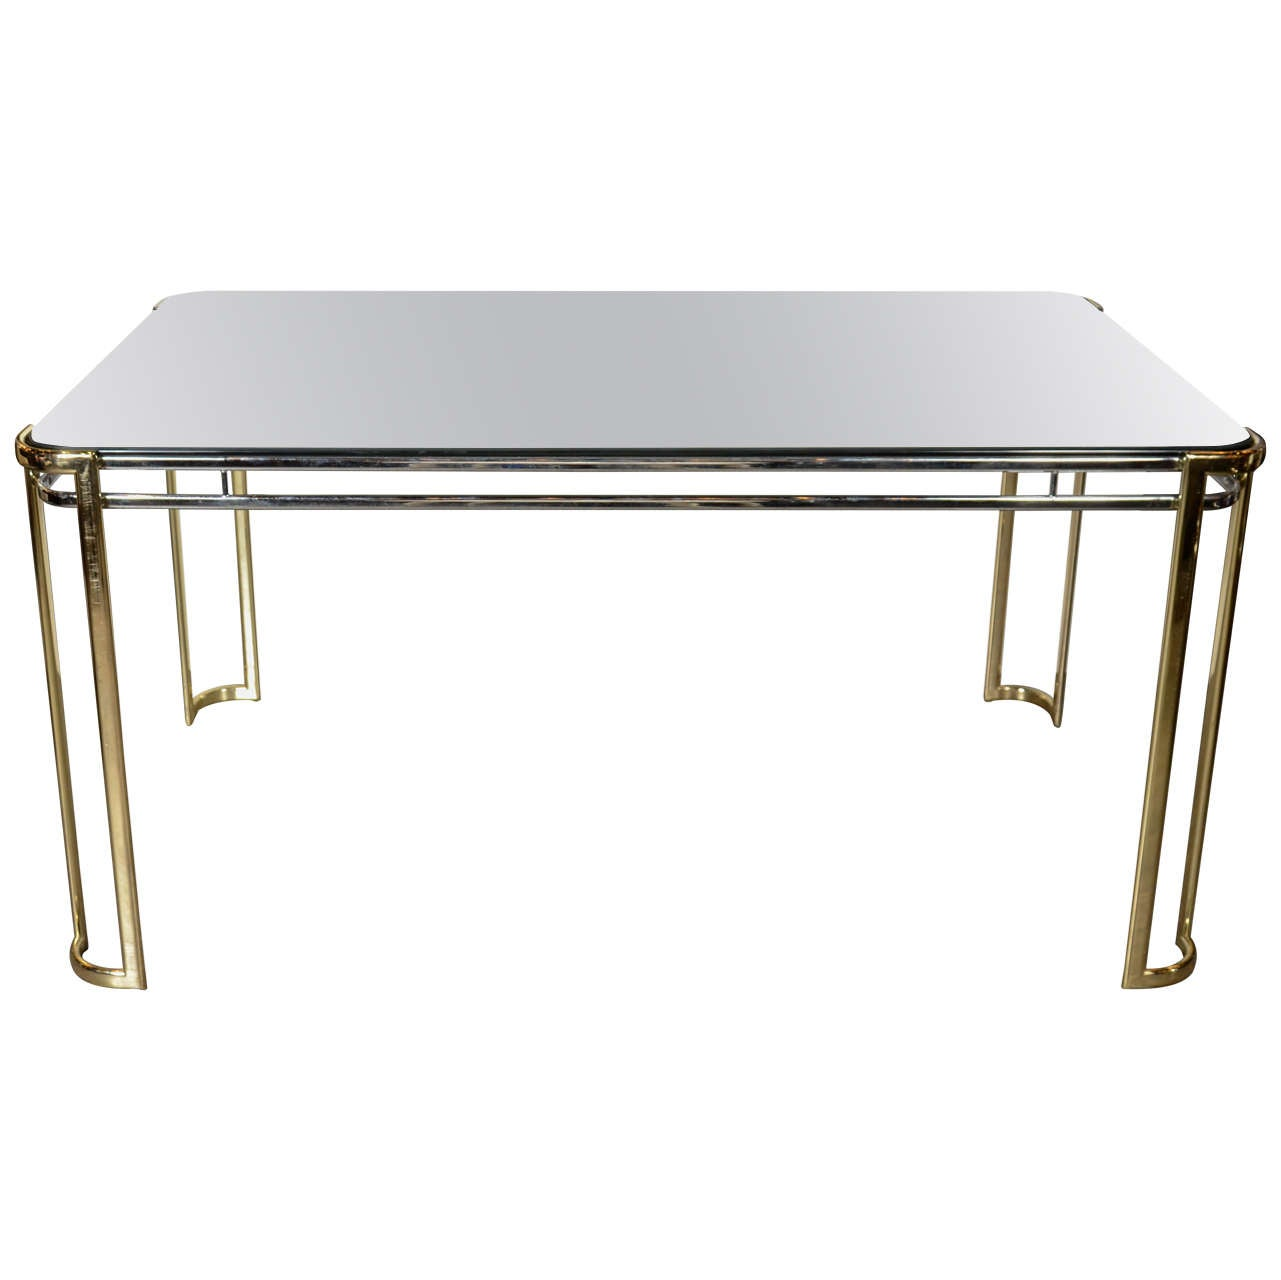 Modernist Mid-Century Polished Brass and Chrome Mirrored Dining Table 1